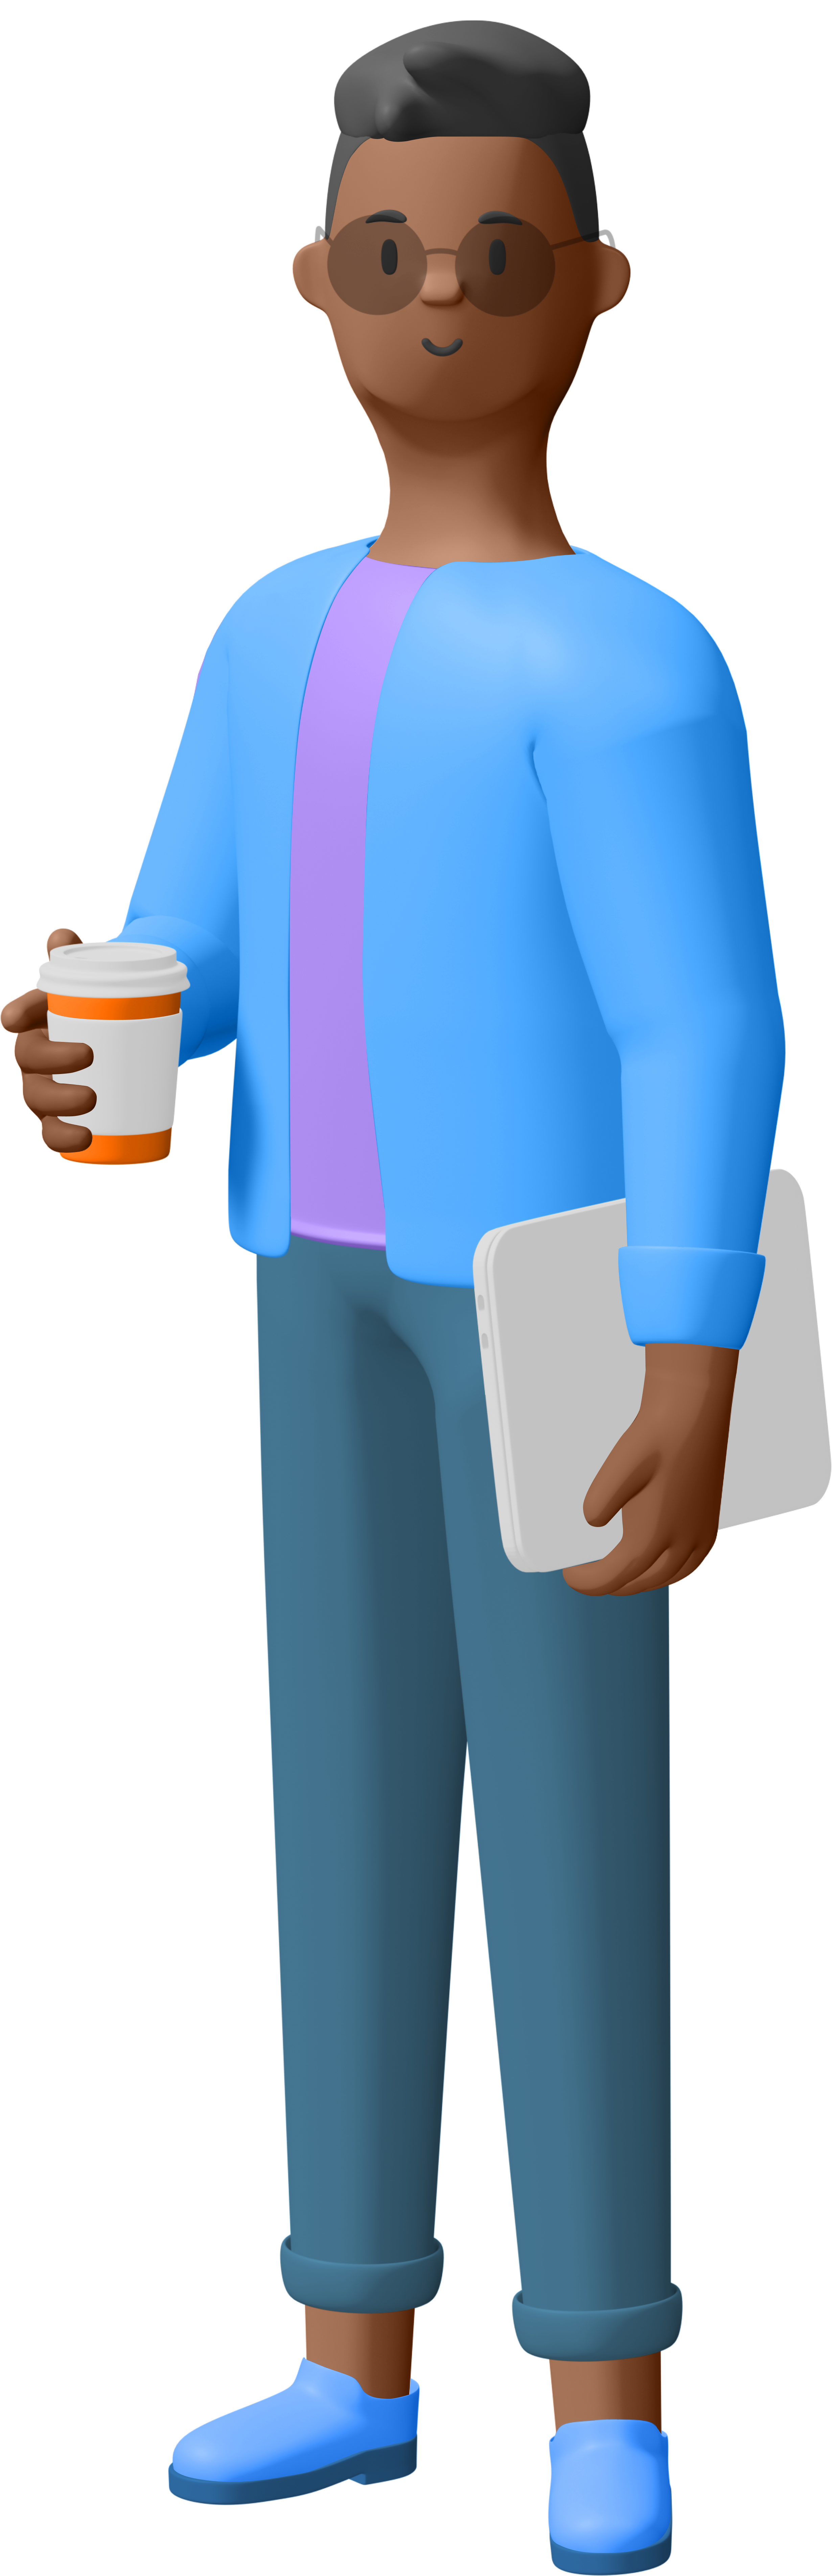 An 3d animated man holding a cup of coffee and a laptop